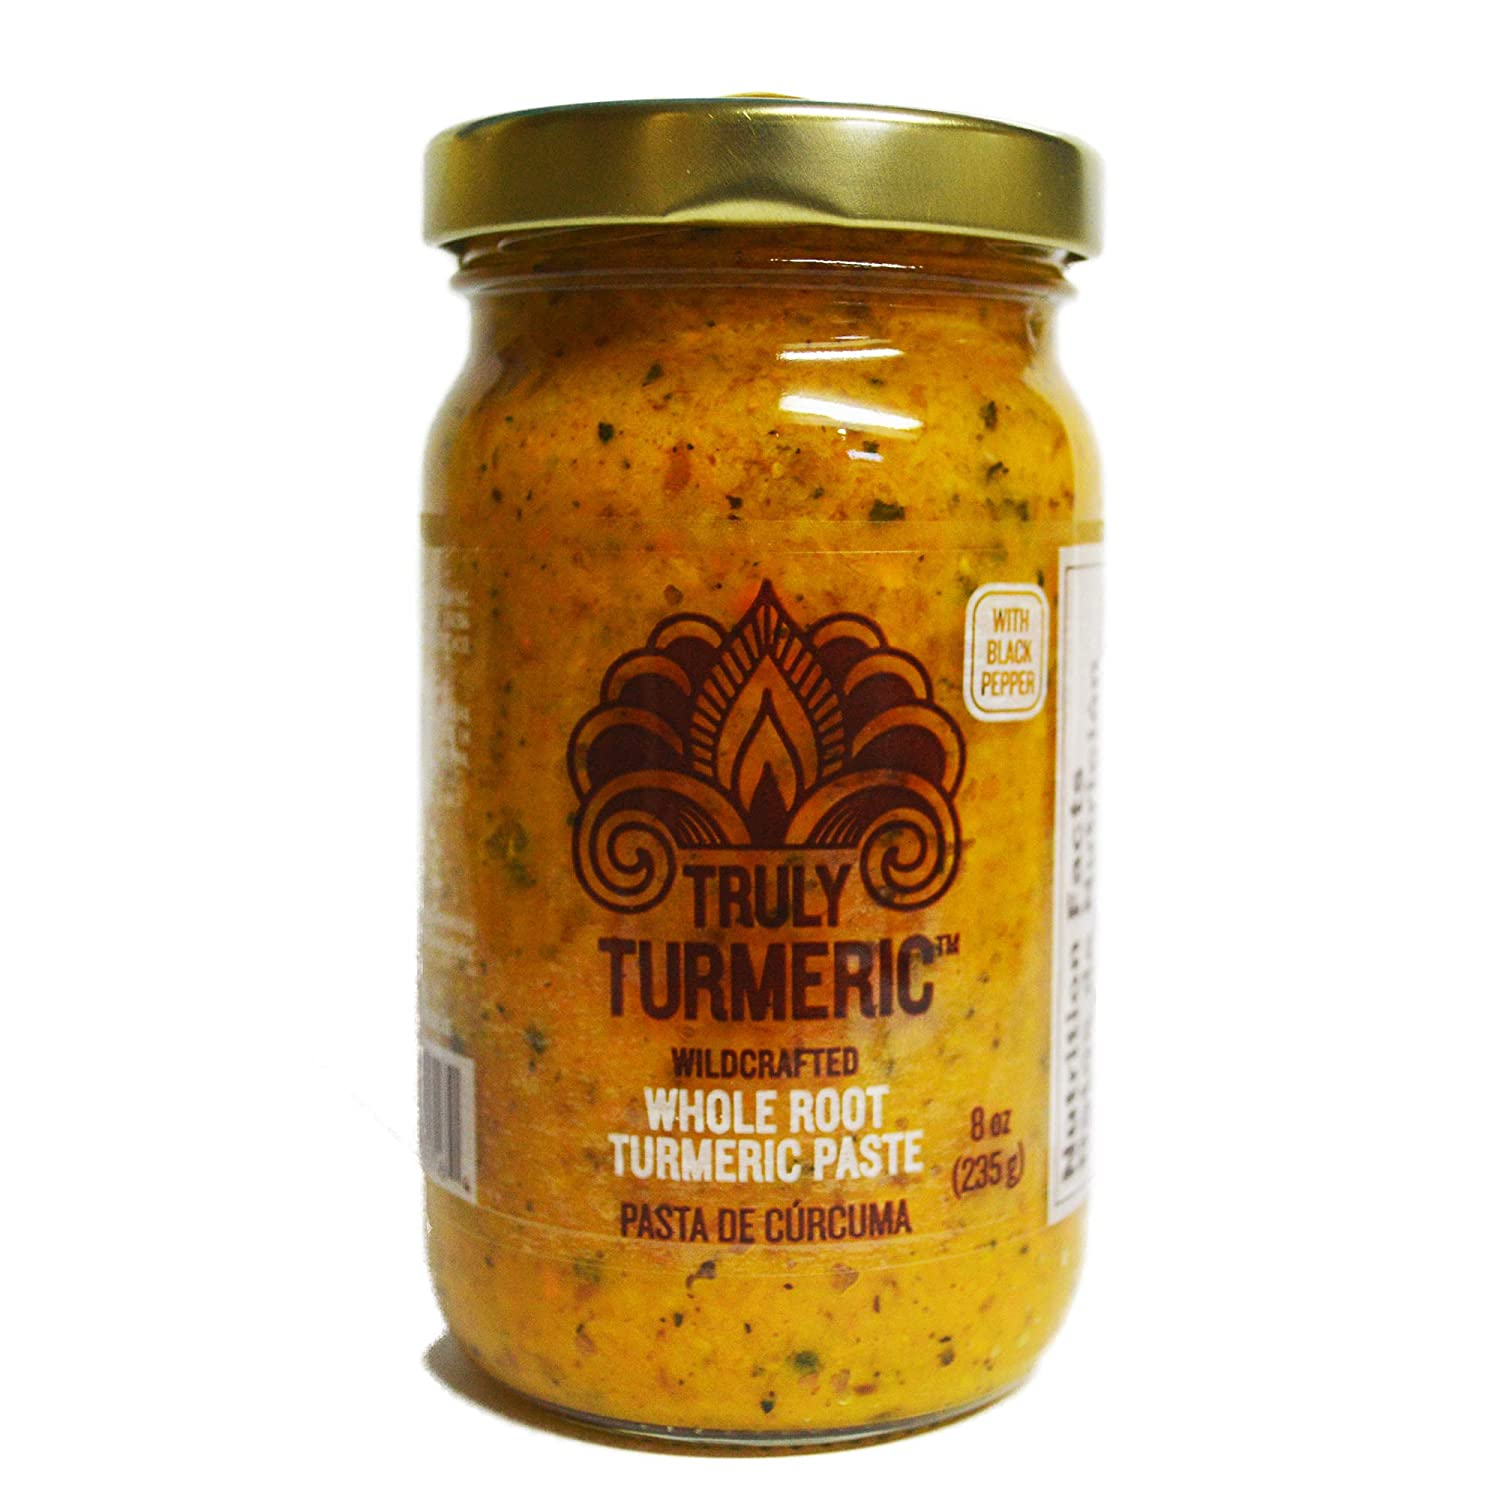 Truly Turmeric - Fresh Wildcrafted Whole Root Turmeric Paste | Turmeric Spice for Cooking and Golden Milk - 8oz (235g) - Black Pepper